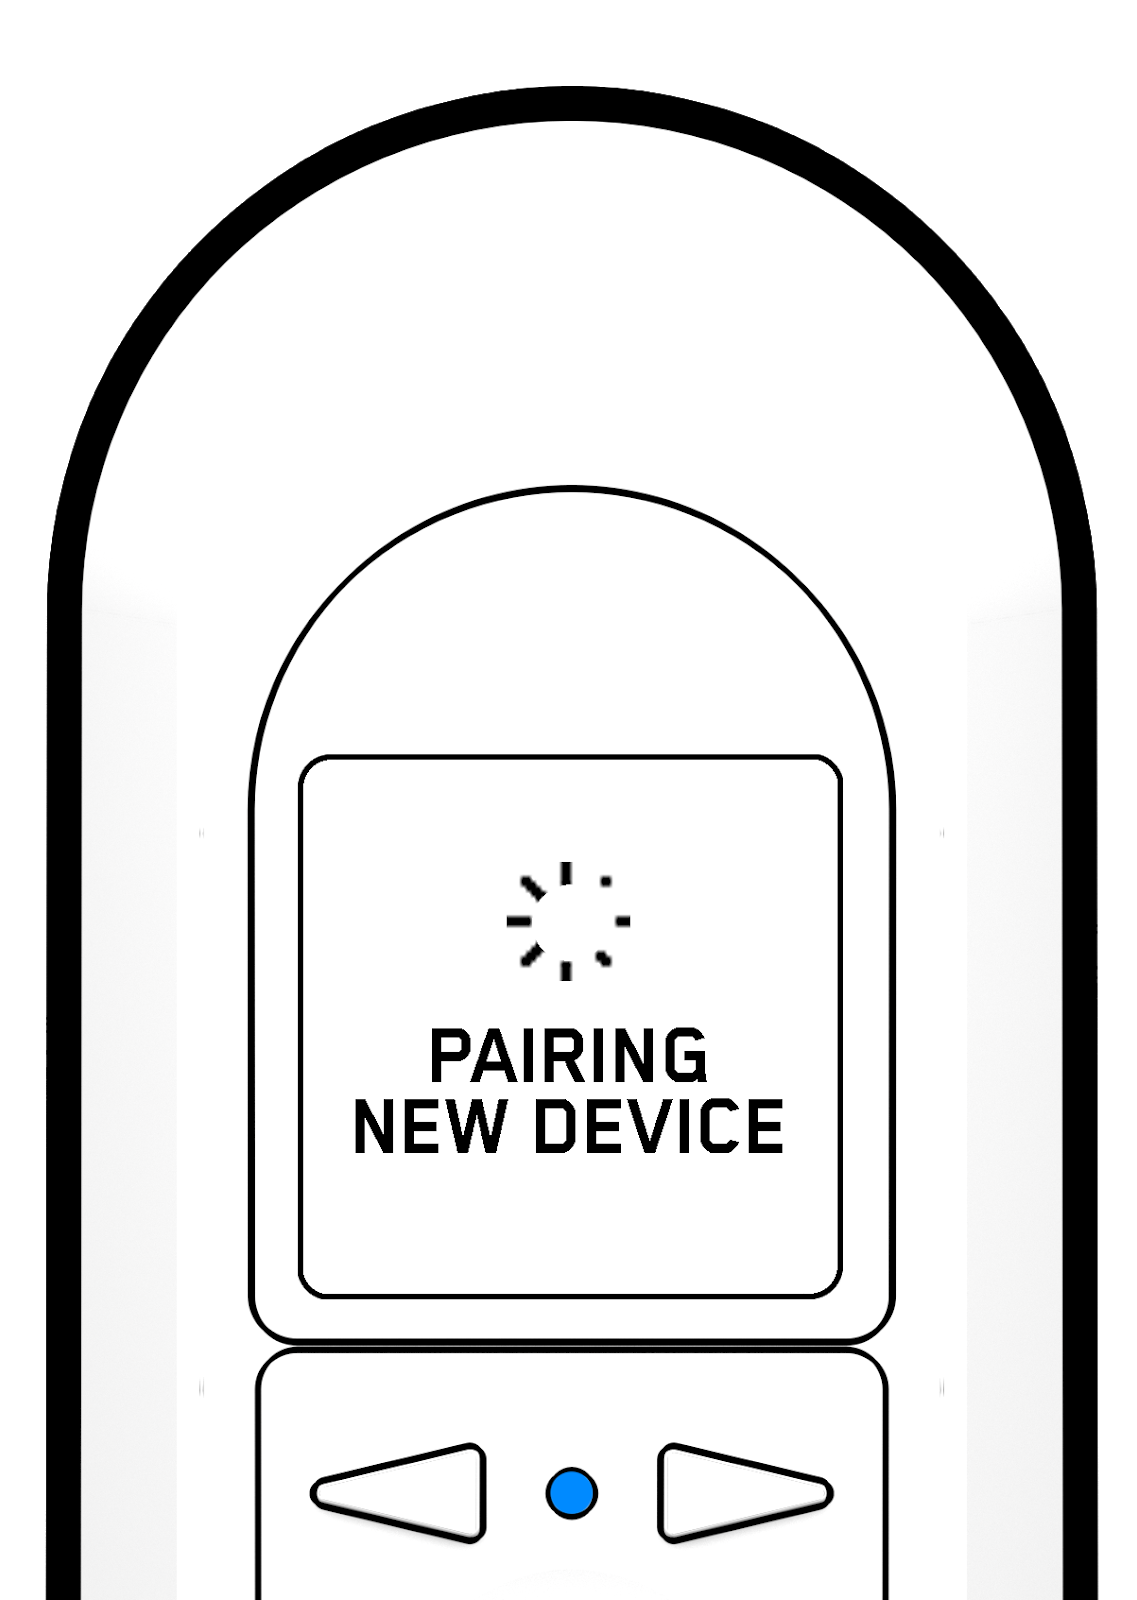 beacon-pairingnewdevice.png